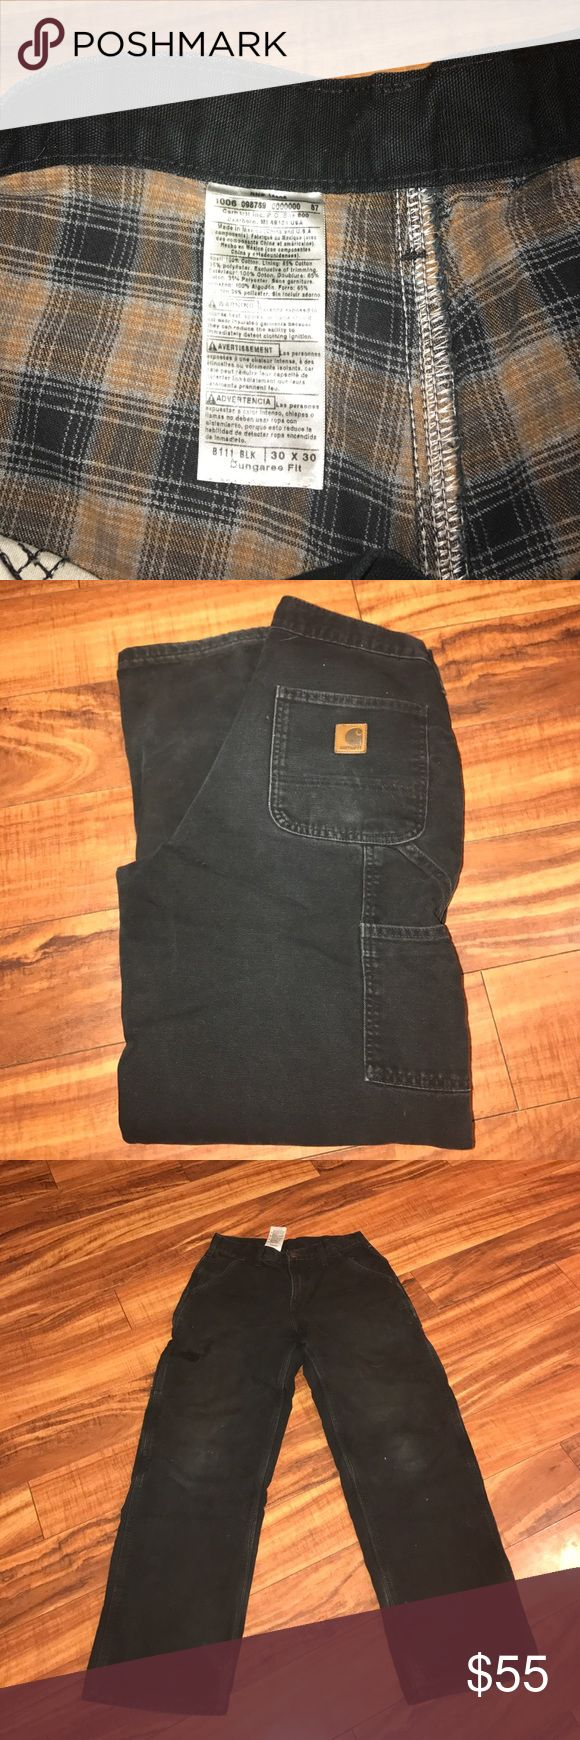 Men's carhartt pants Men's Carhart jeans worn but still in very good condition little wear shown on both the knees and the bottom of the legs most shown in pictures. Flannel lined all the way through. 30x30 Carhartt Pants